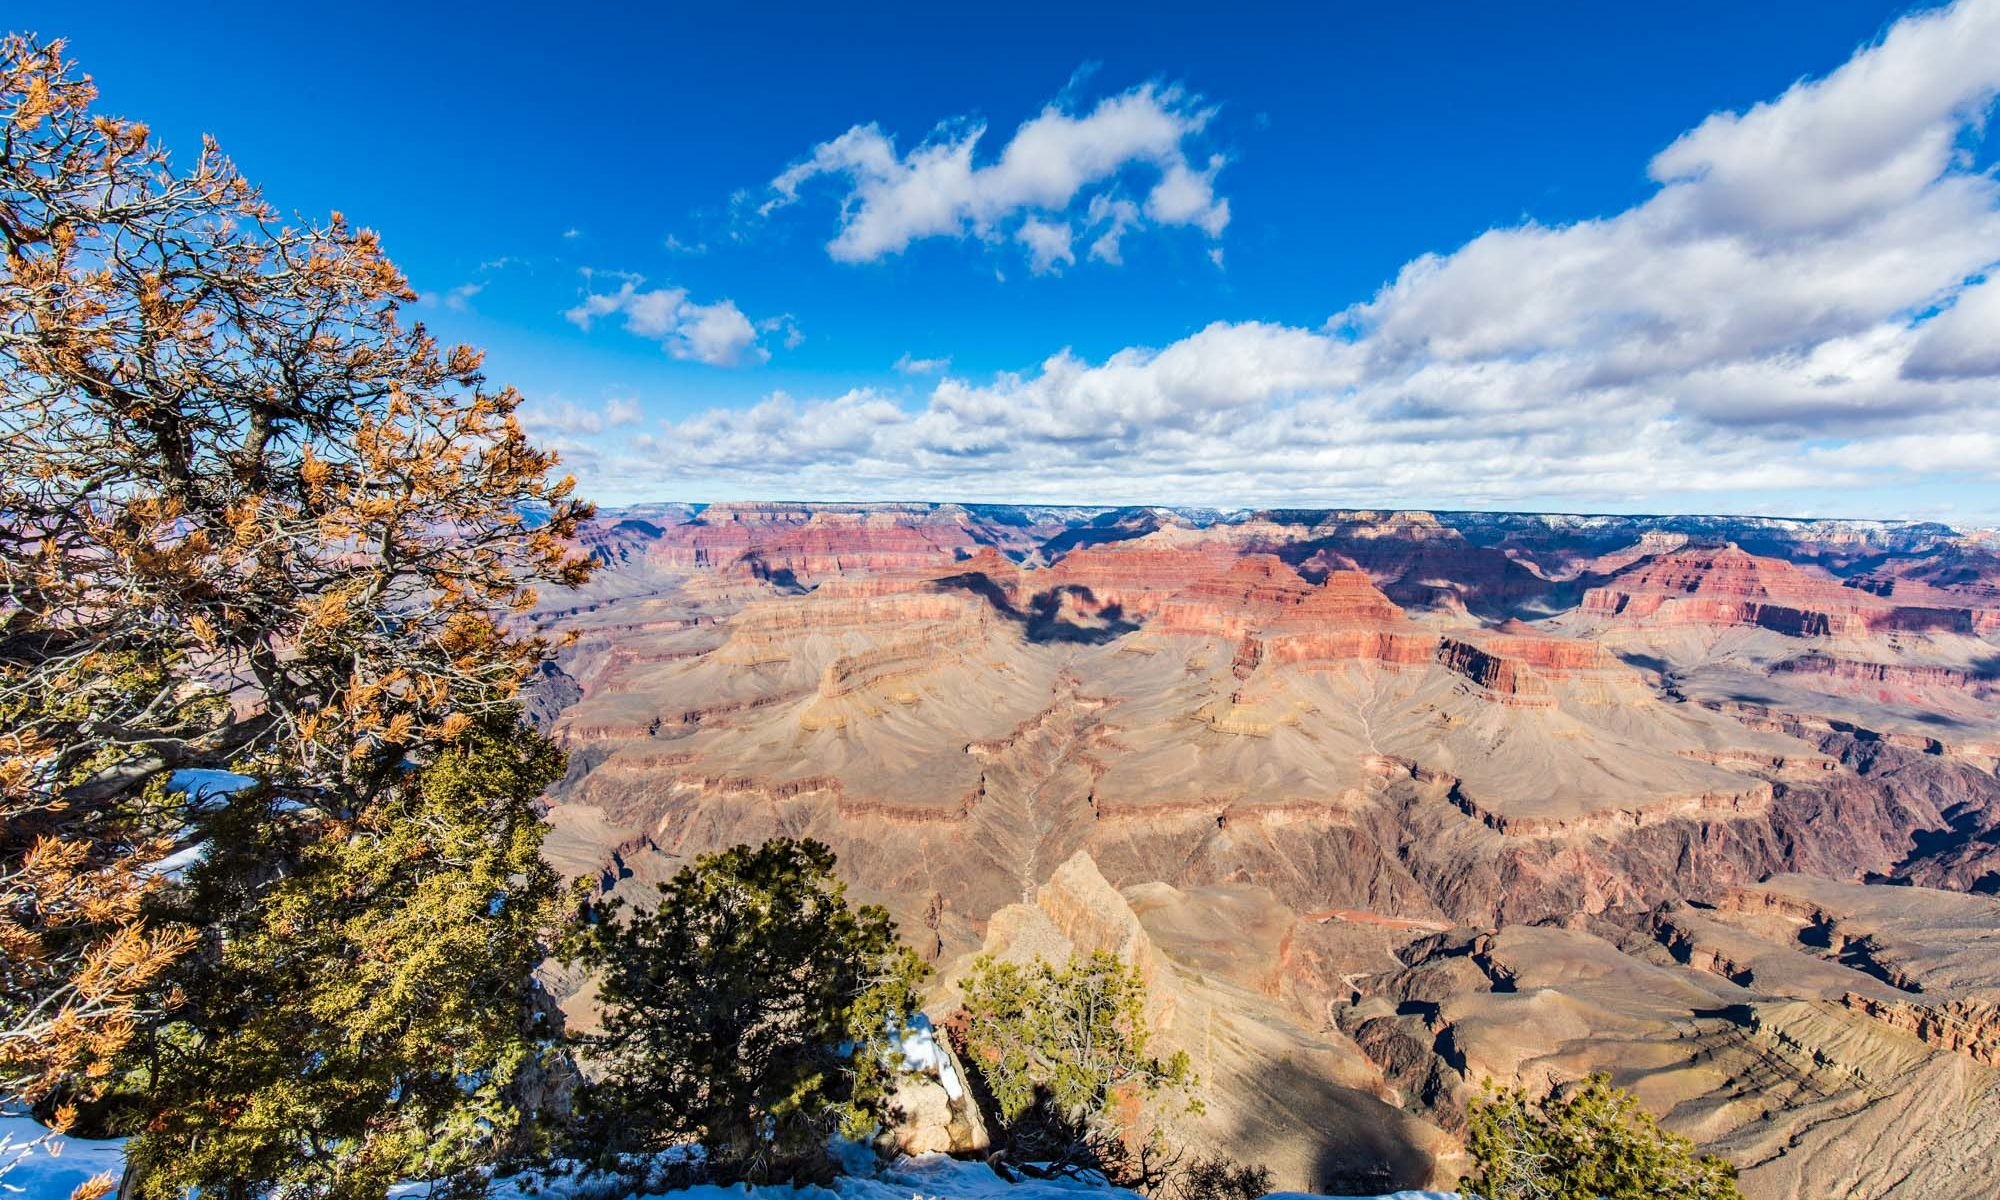 Blick in den Grand Canyon.